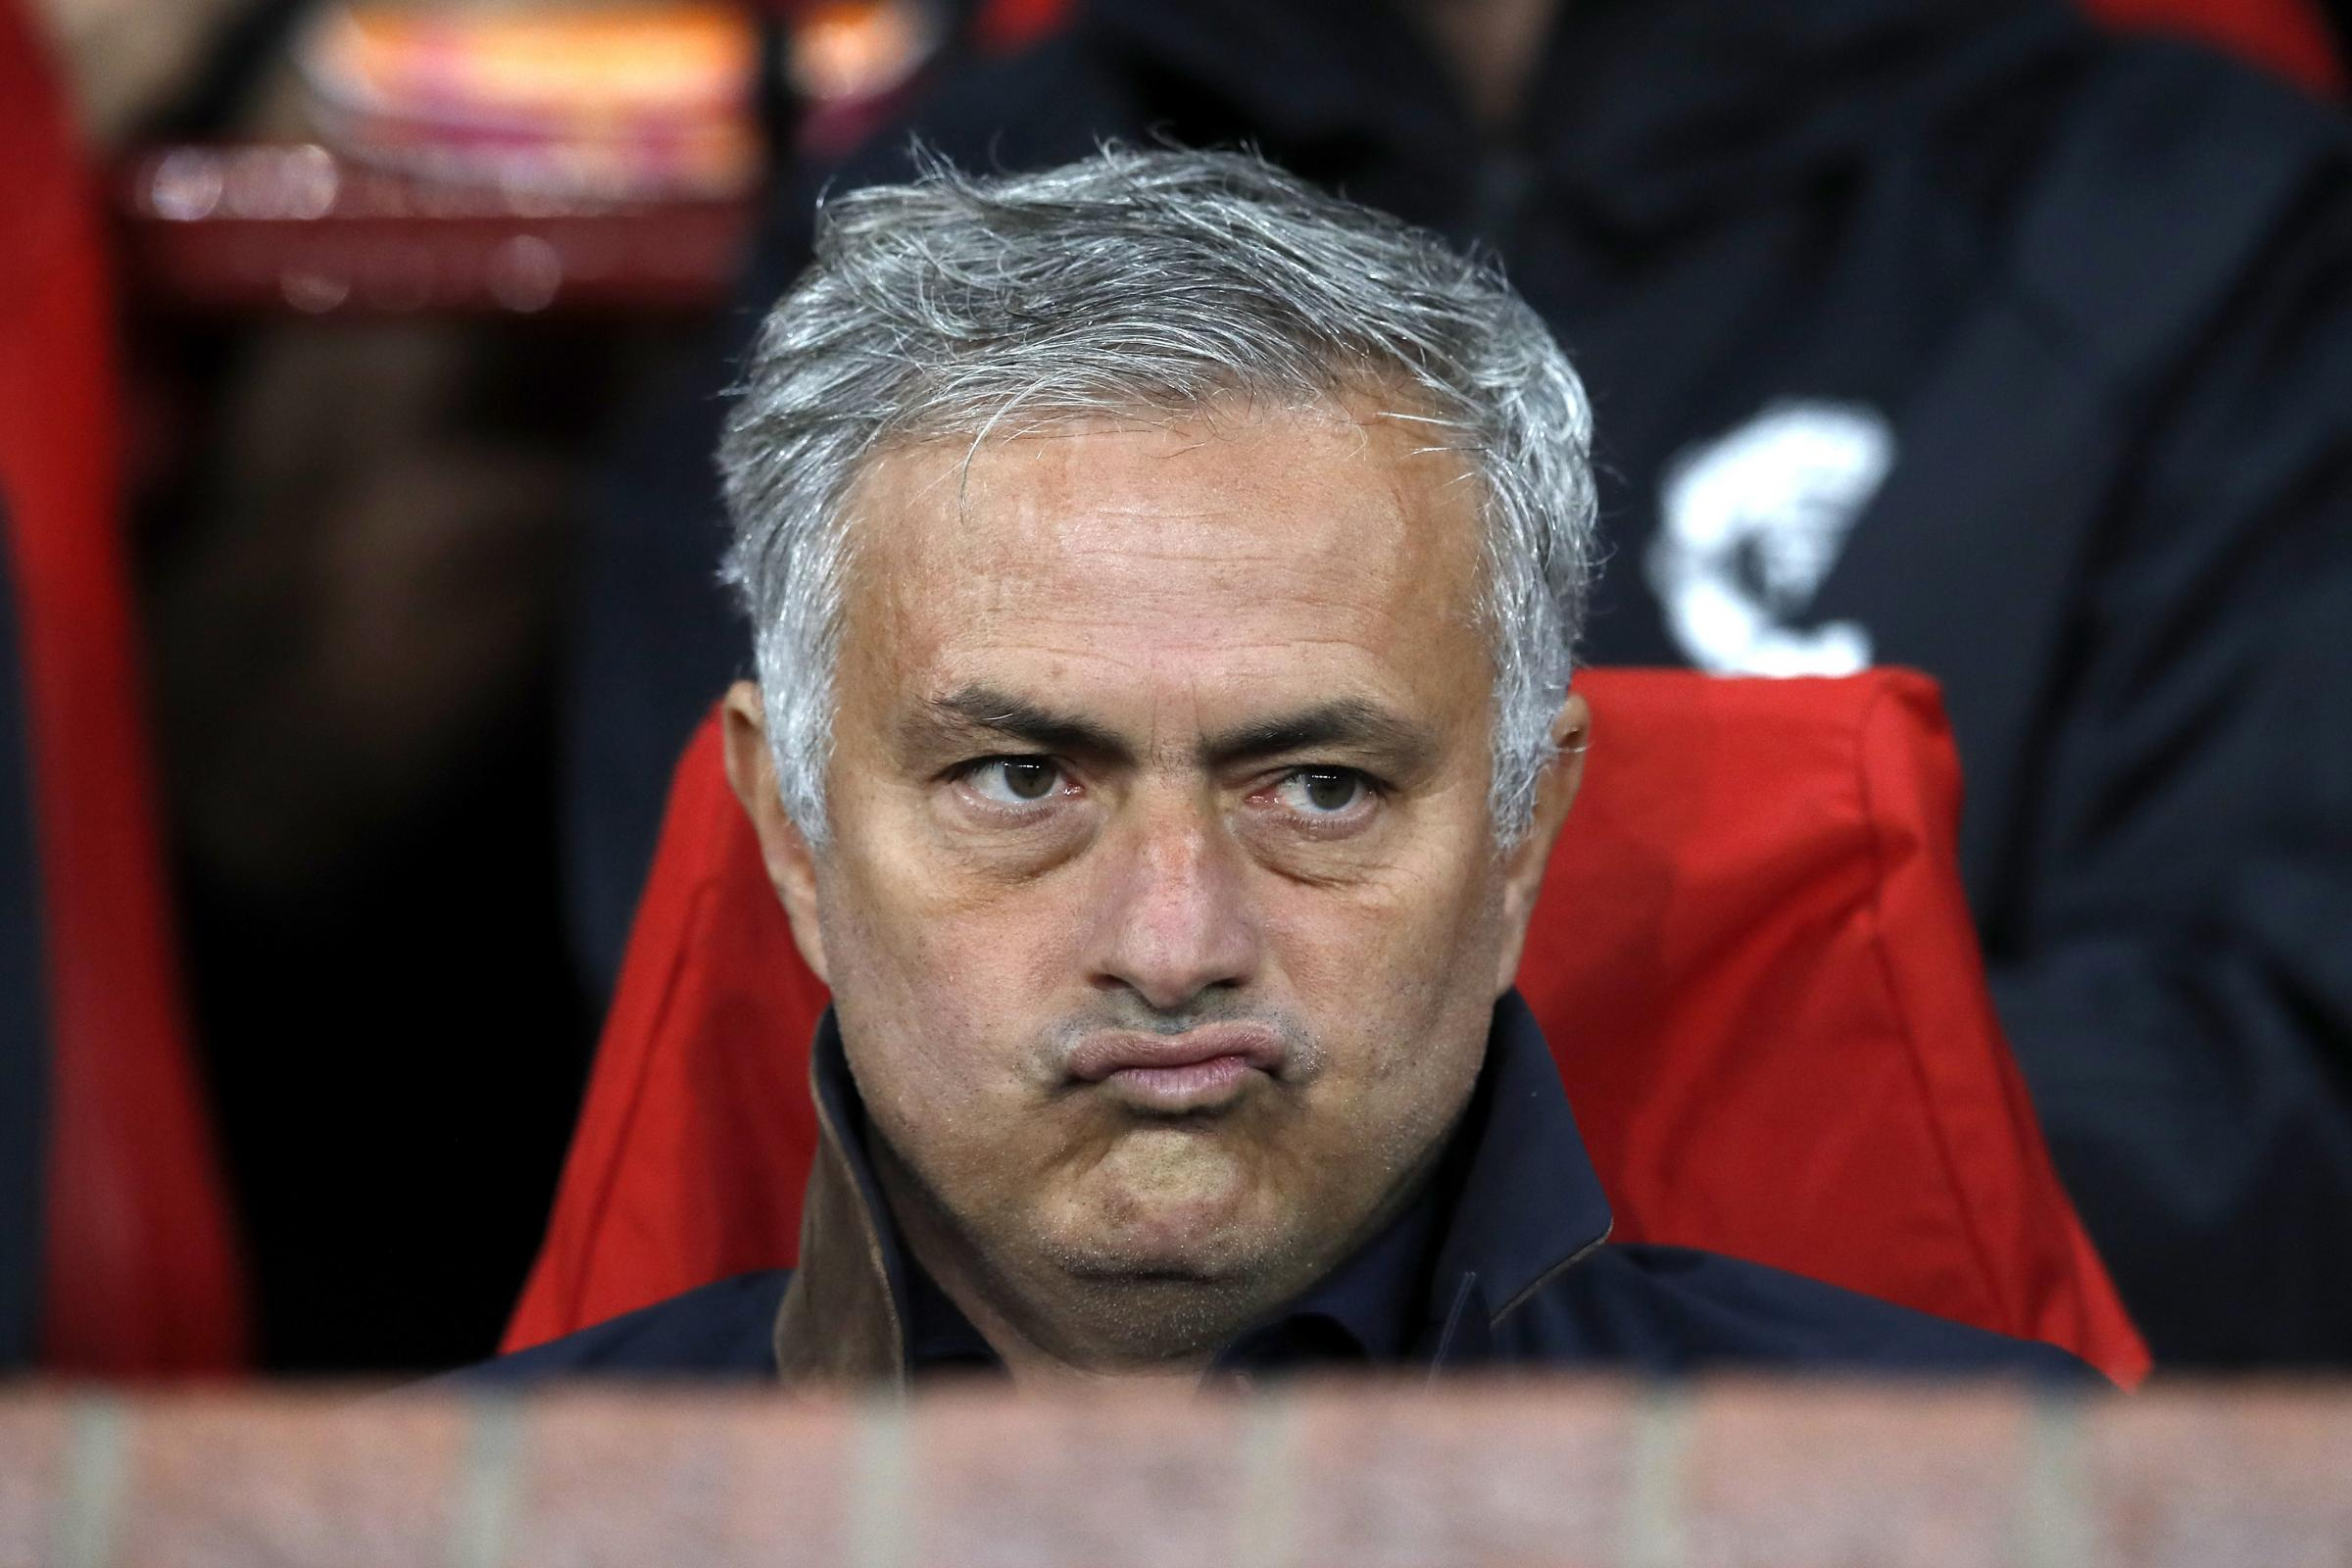 Jose Mourinho has been warned over United's late kick-off against Valencia earlier this month